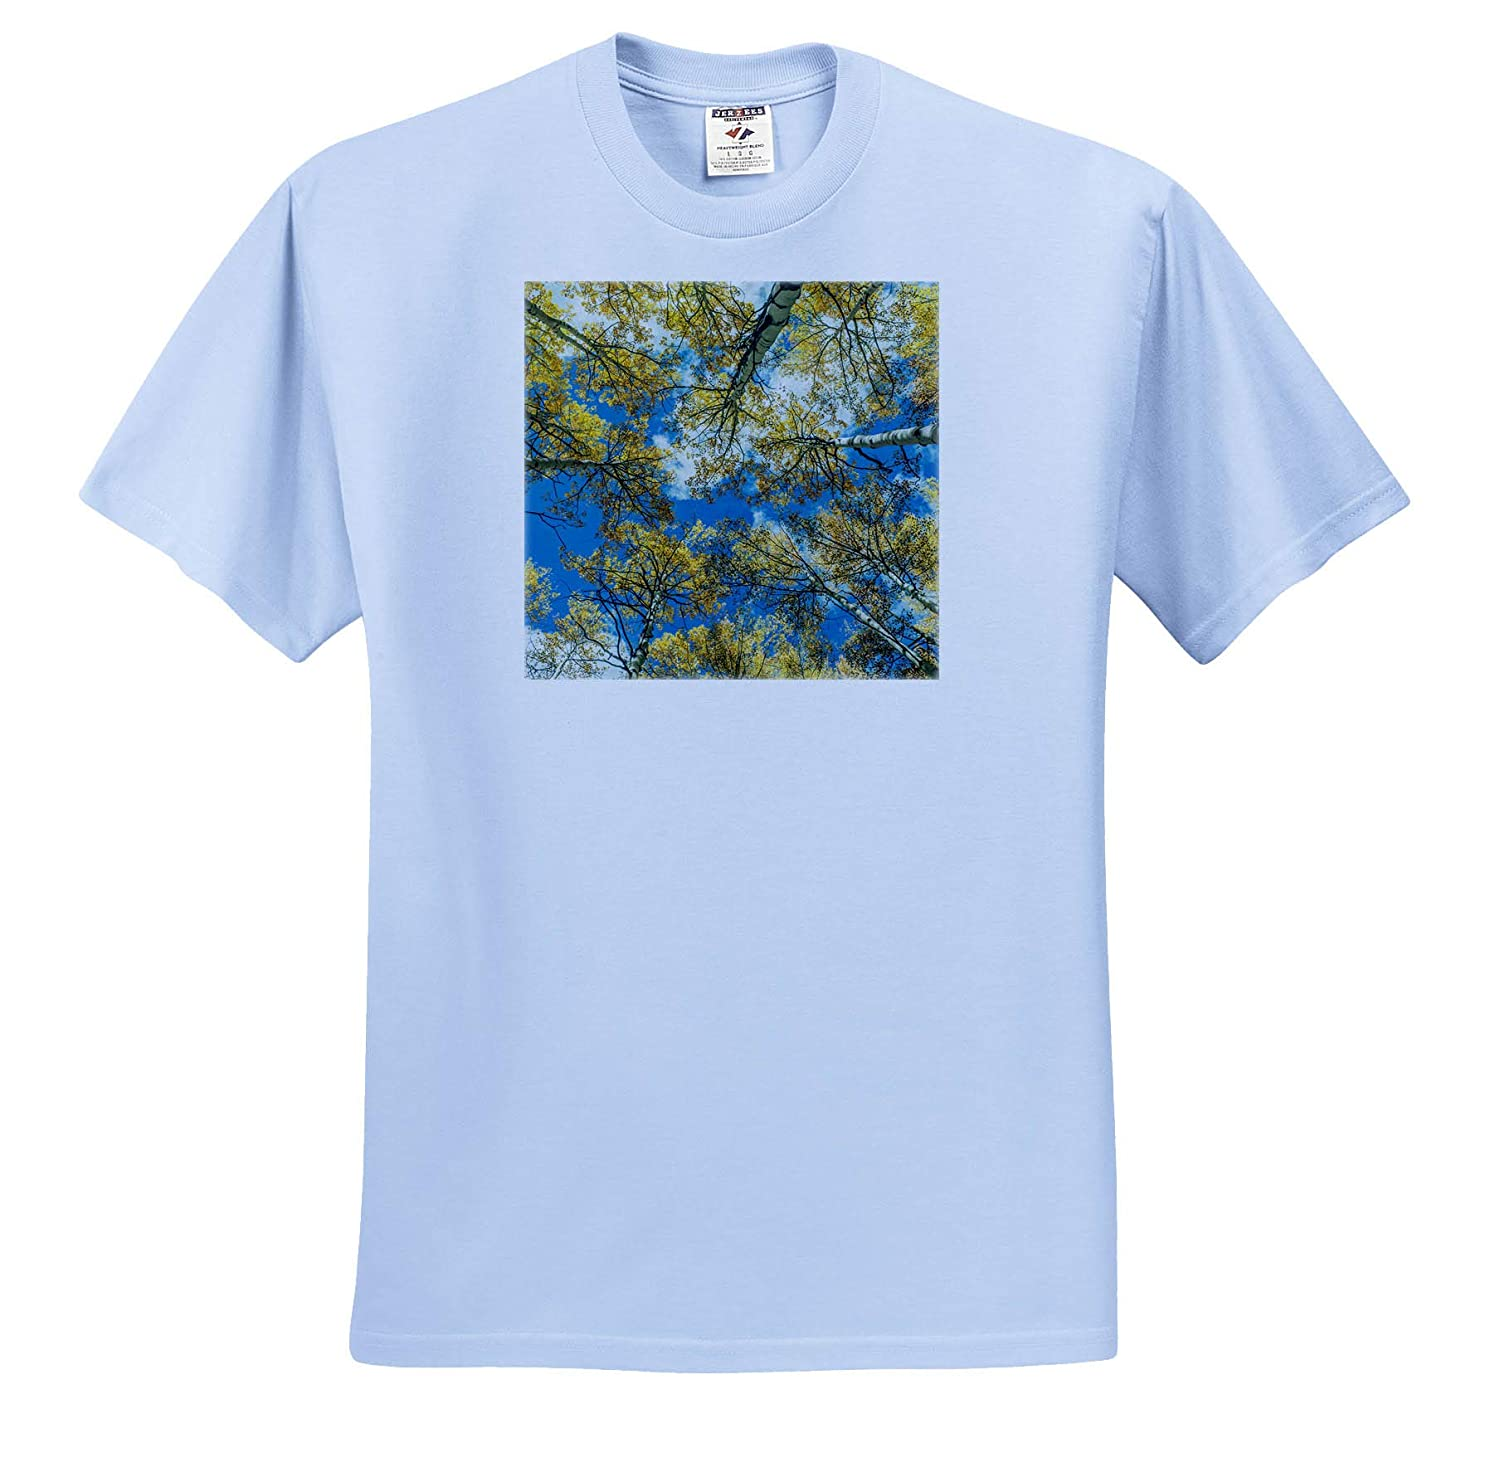 - Adult T-Shirt XL ts/_314750 Looking up to The Sky in an Aspen Grove with Autumn Color 3dRose Danita Delimont Autumn